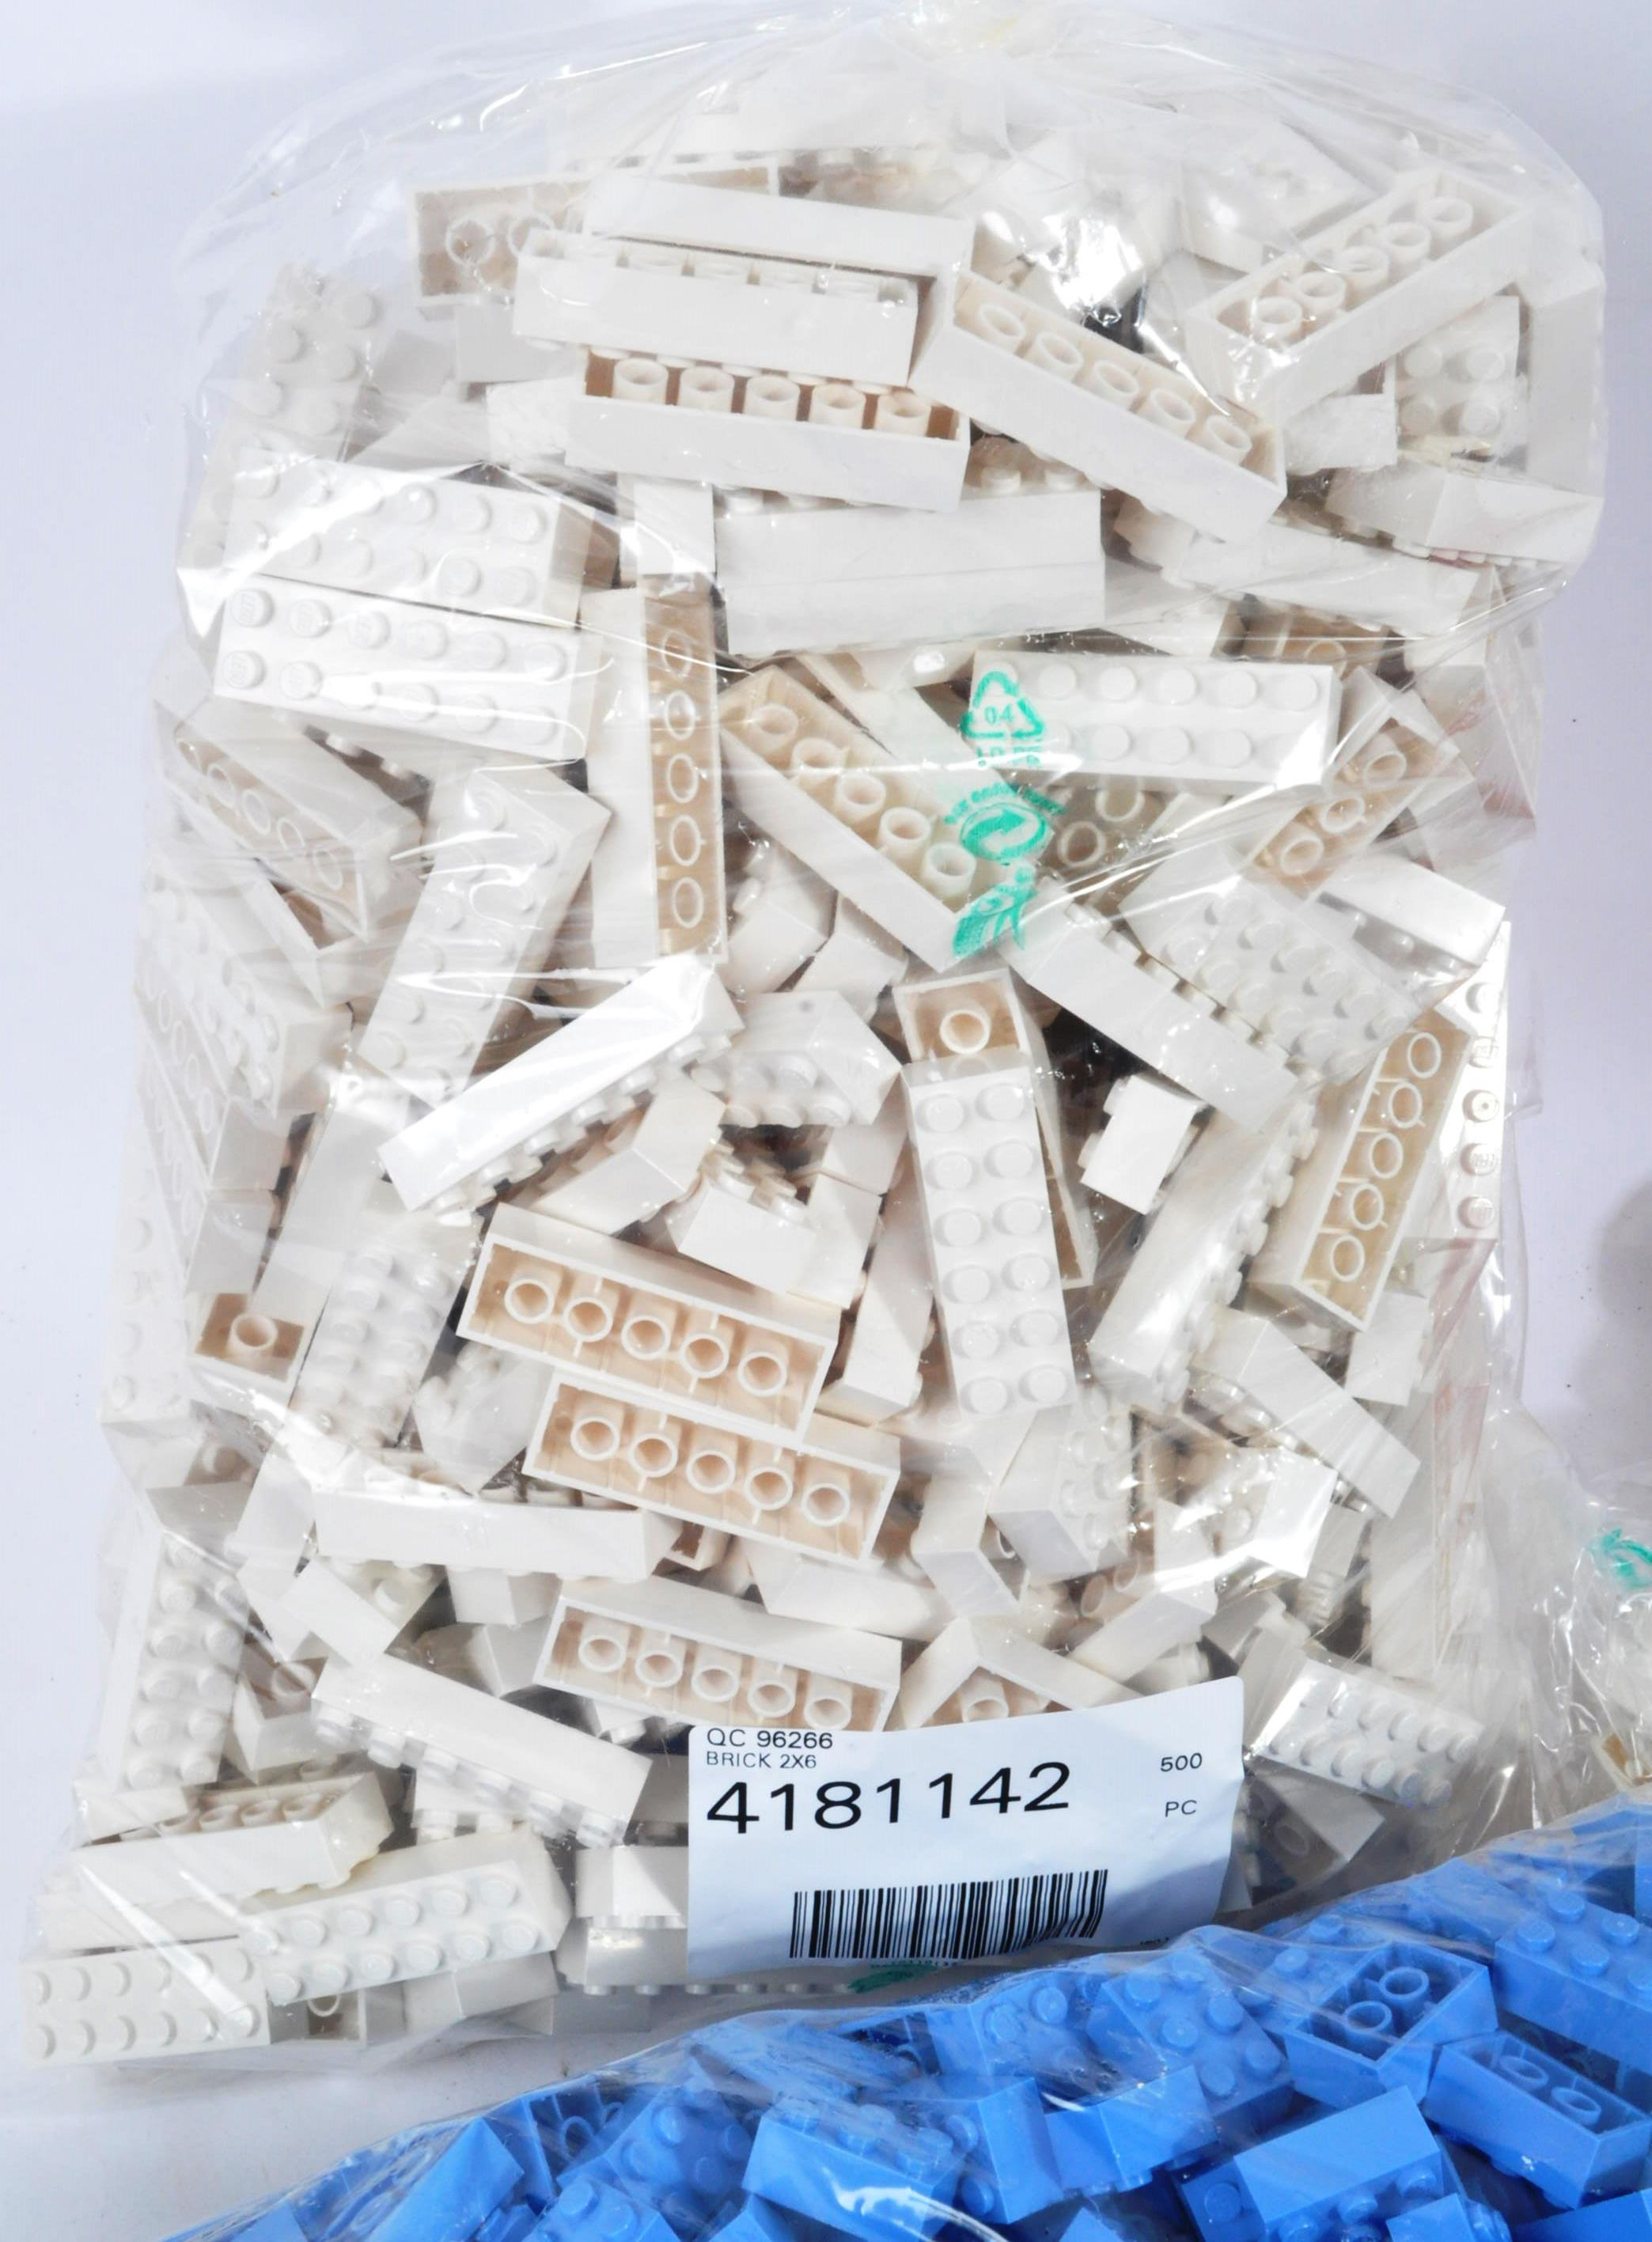 LEGO - LARGE COLLECTION OF BRAND NEW LEGO BUILDING BLOCKS - Image 6 of 6